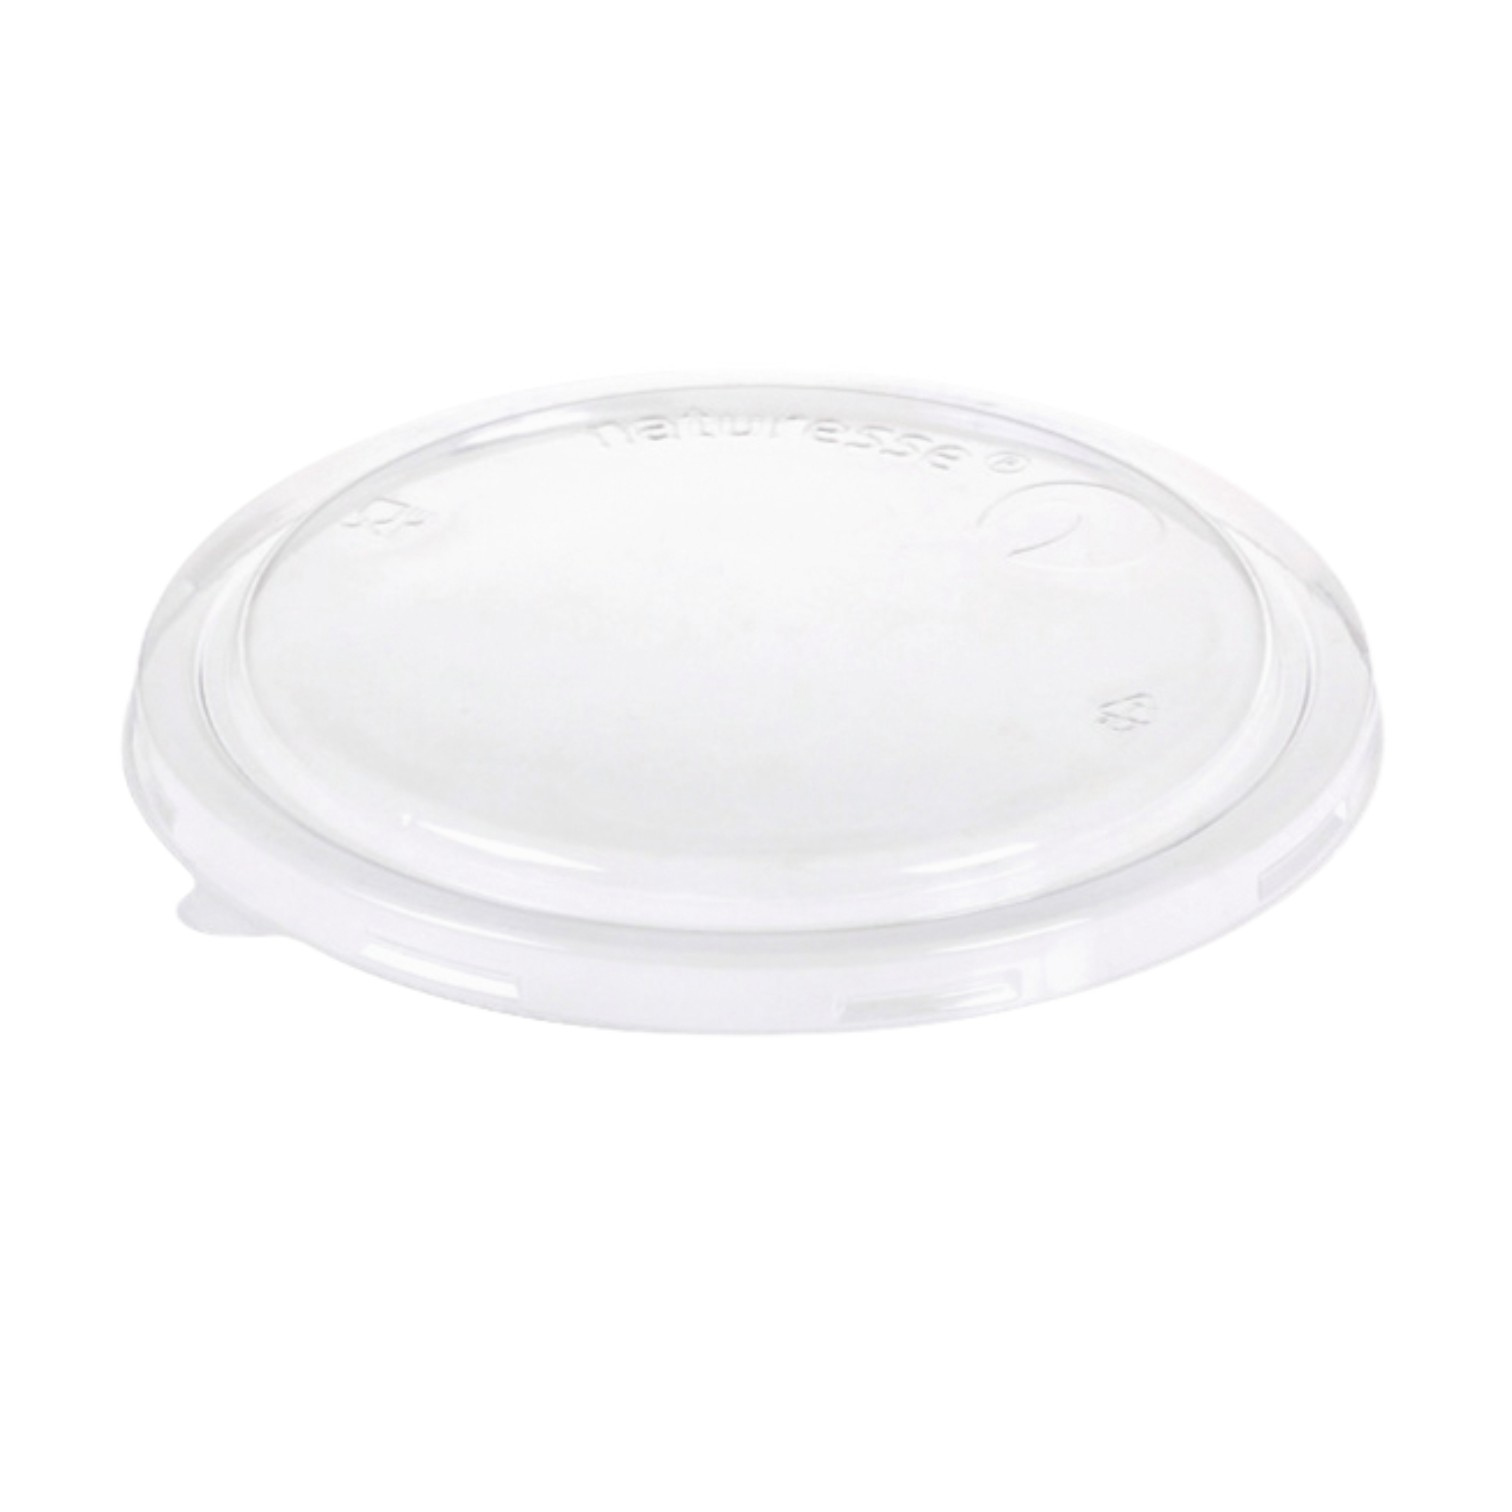 Bio lid for cup 1200 ml